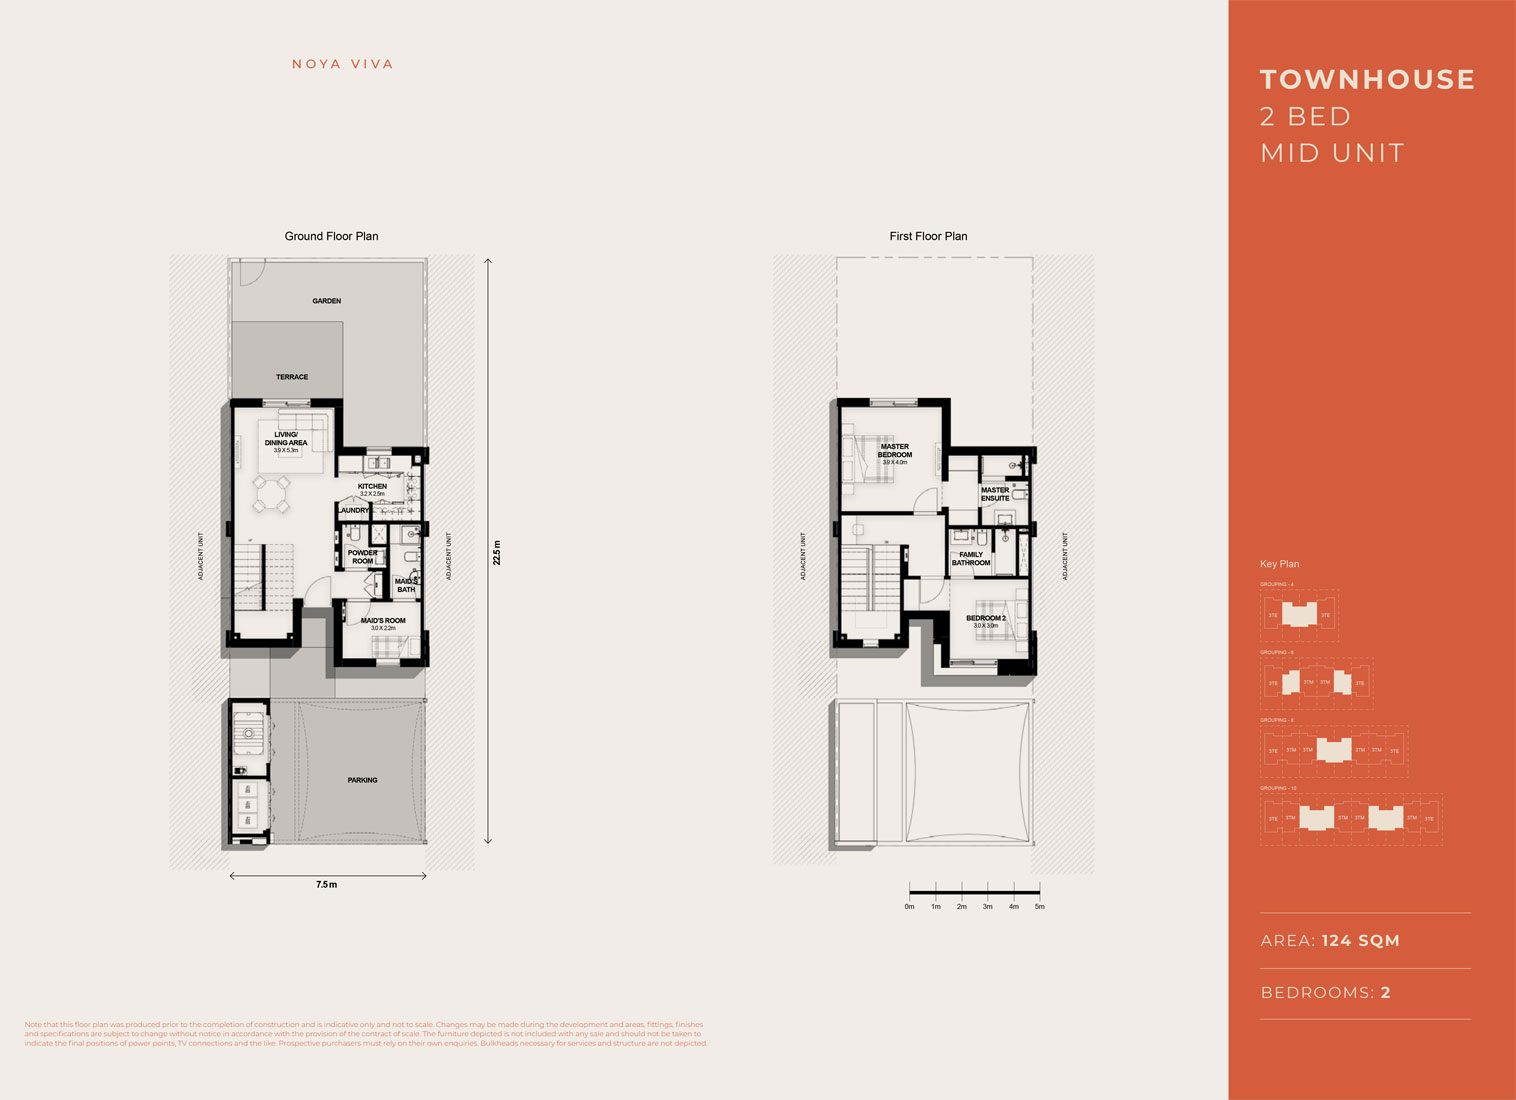 2 Bed TH, Mid Unit